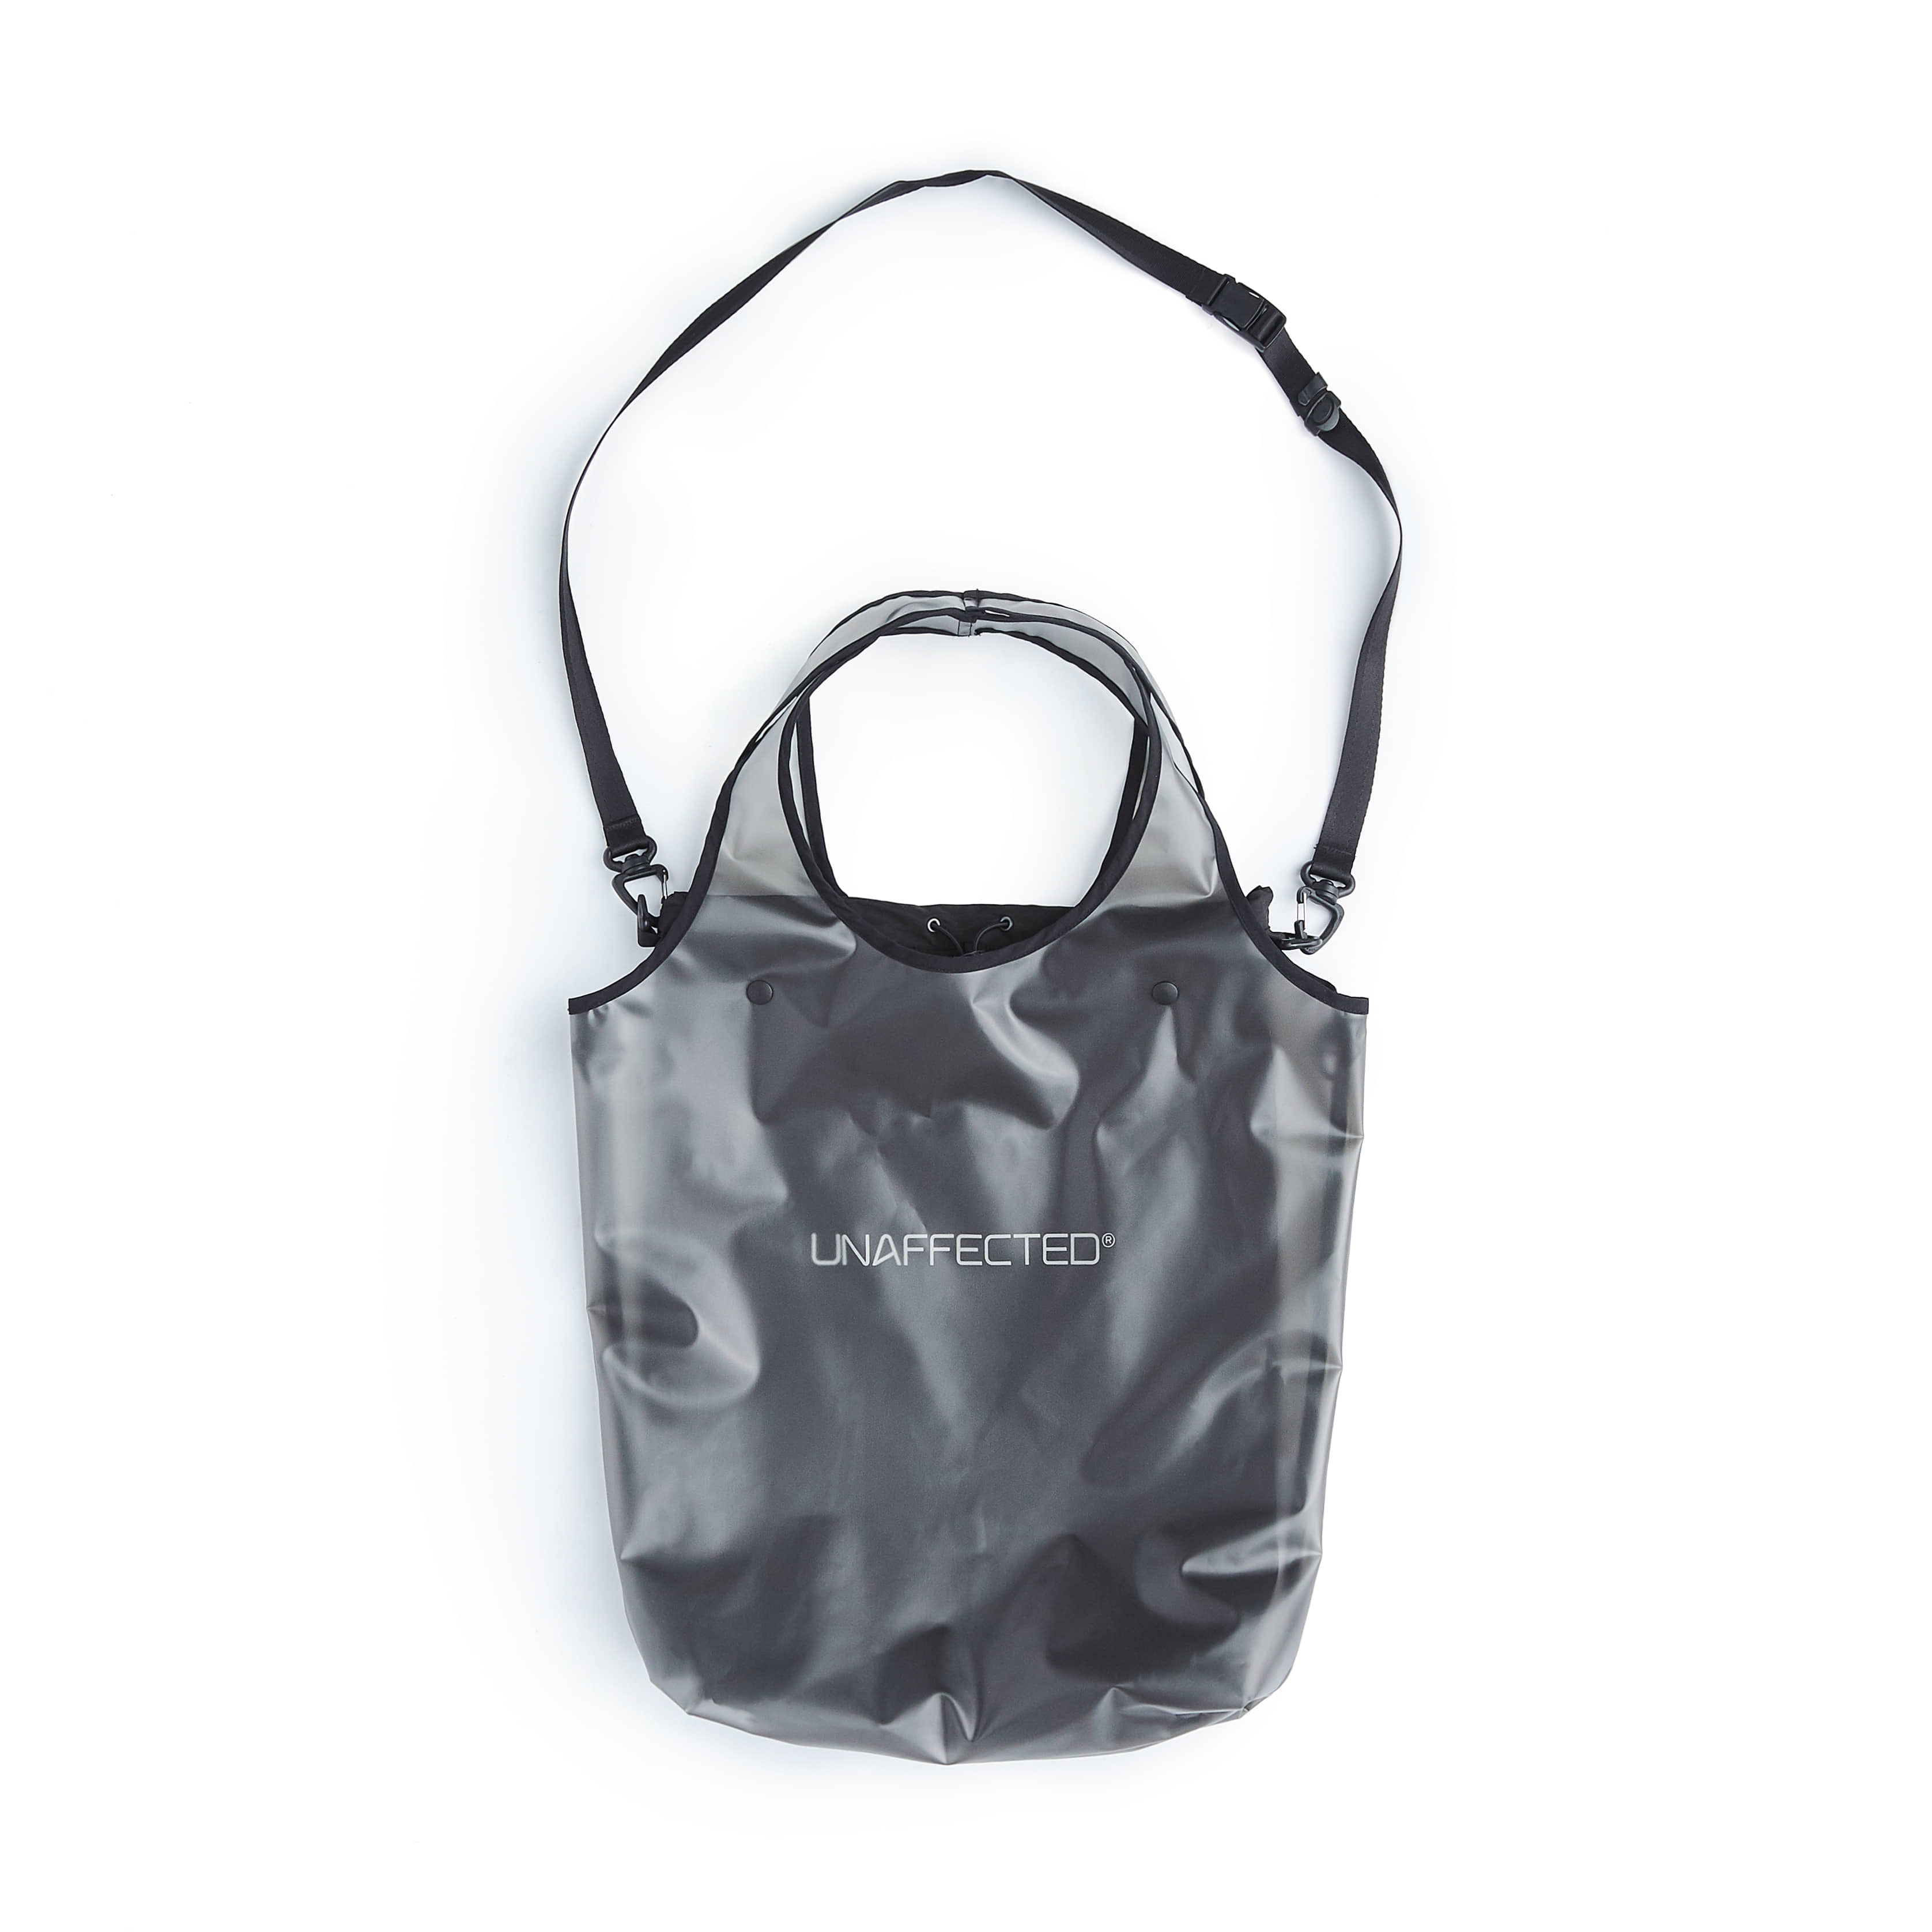 언어펙티드 UTILITY 2WAY BAG_Misty Black & Black